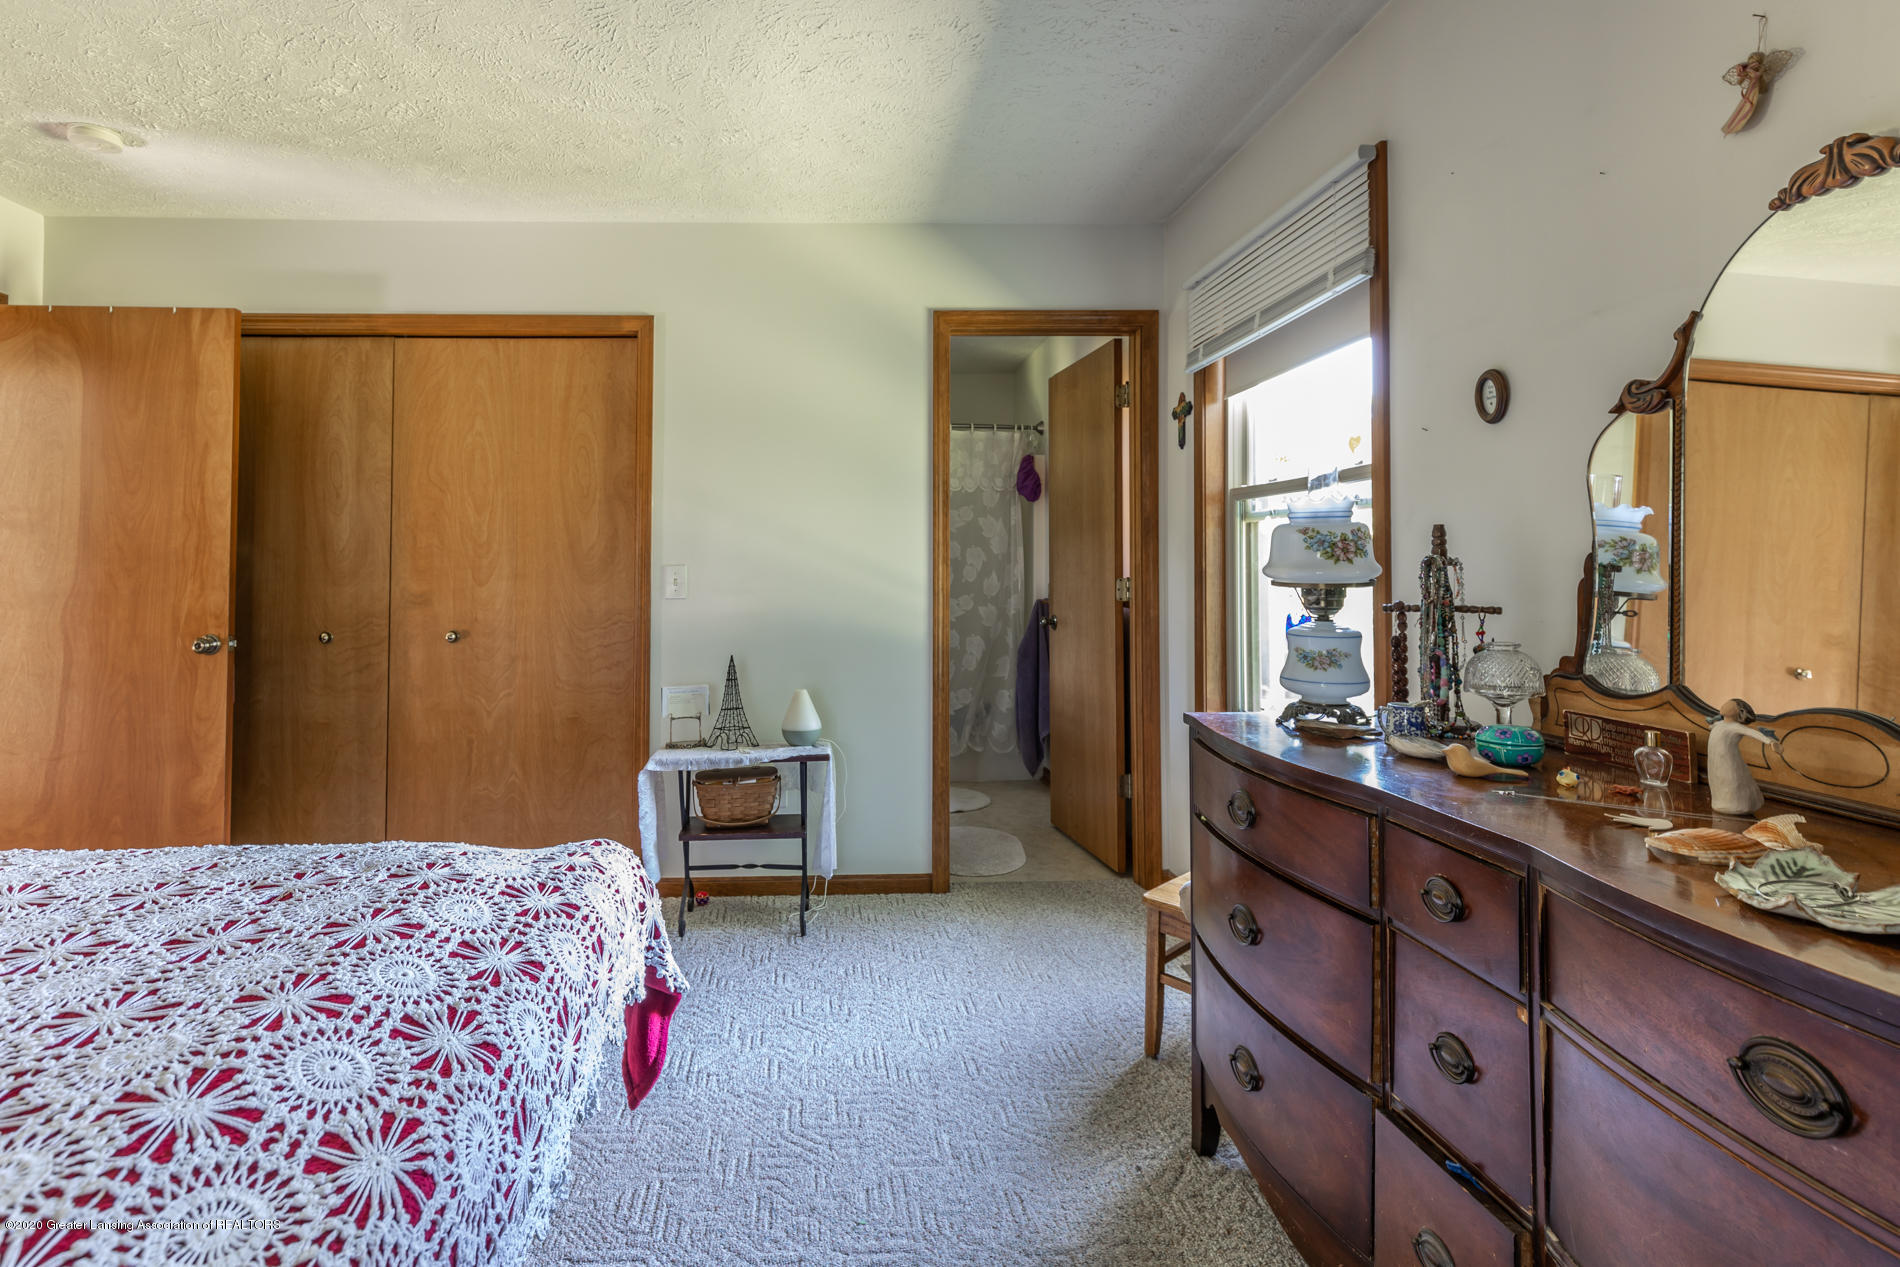 2229 S Chester Rd - Master bed and bath - 10